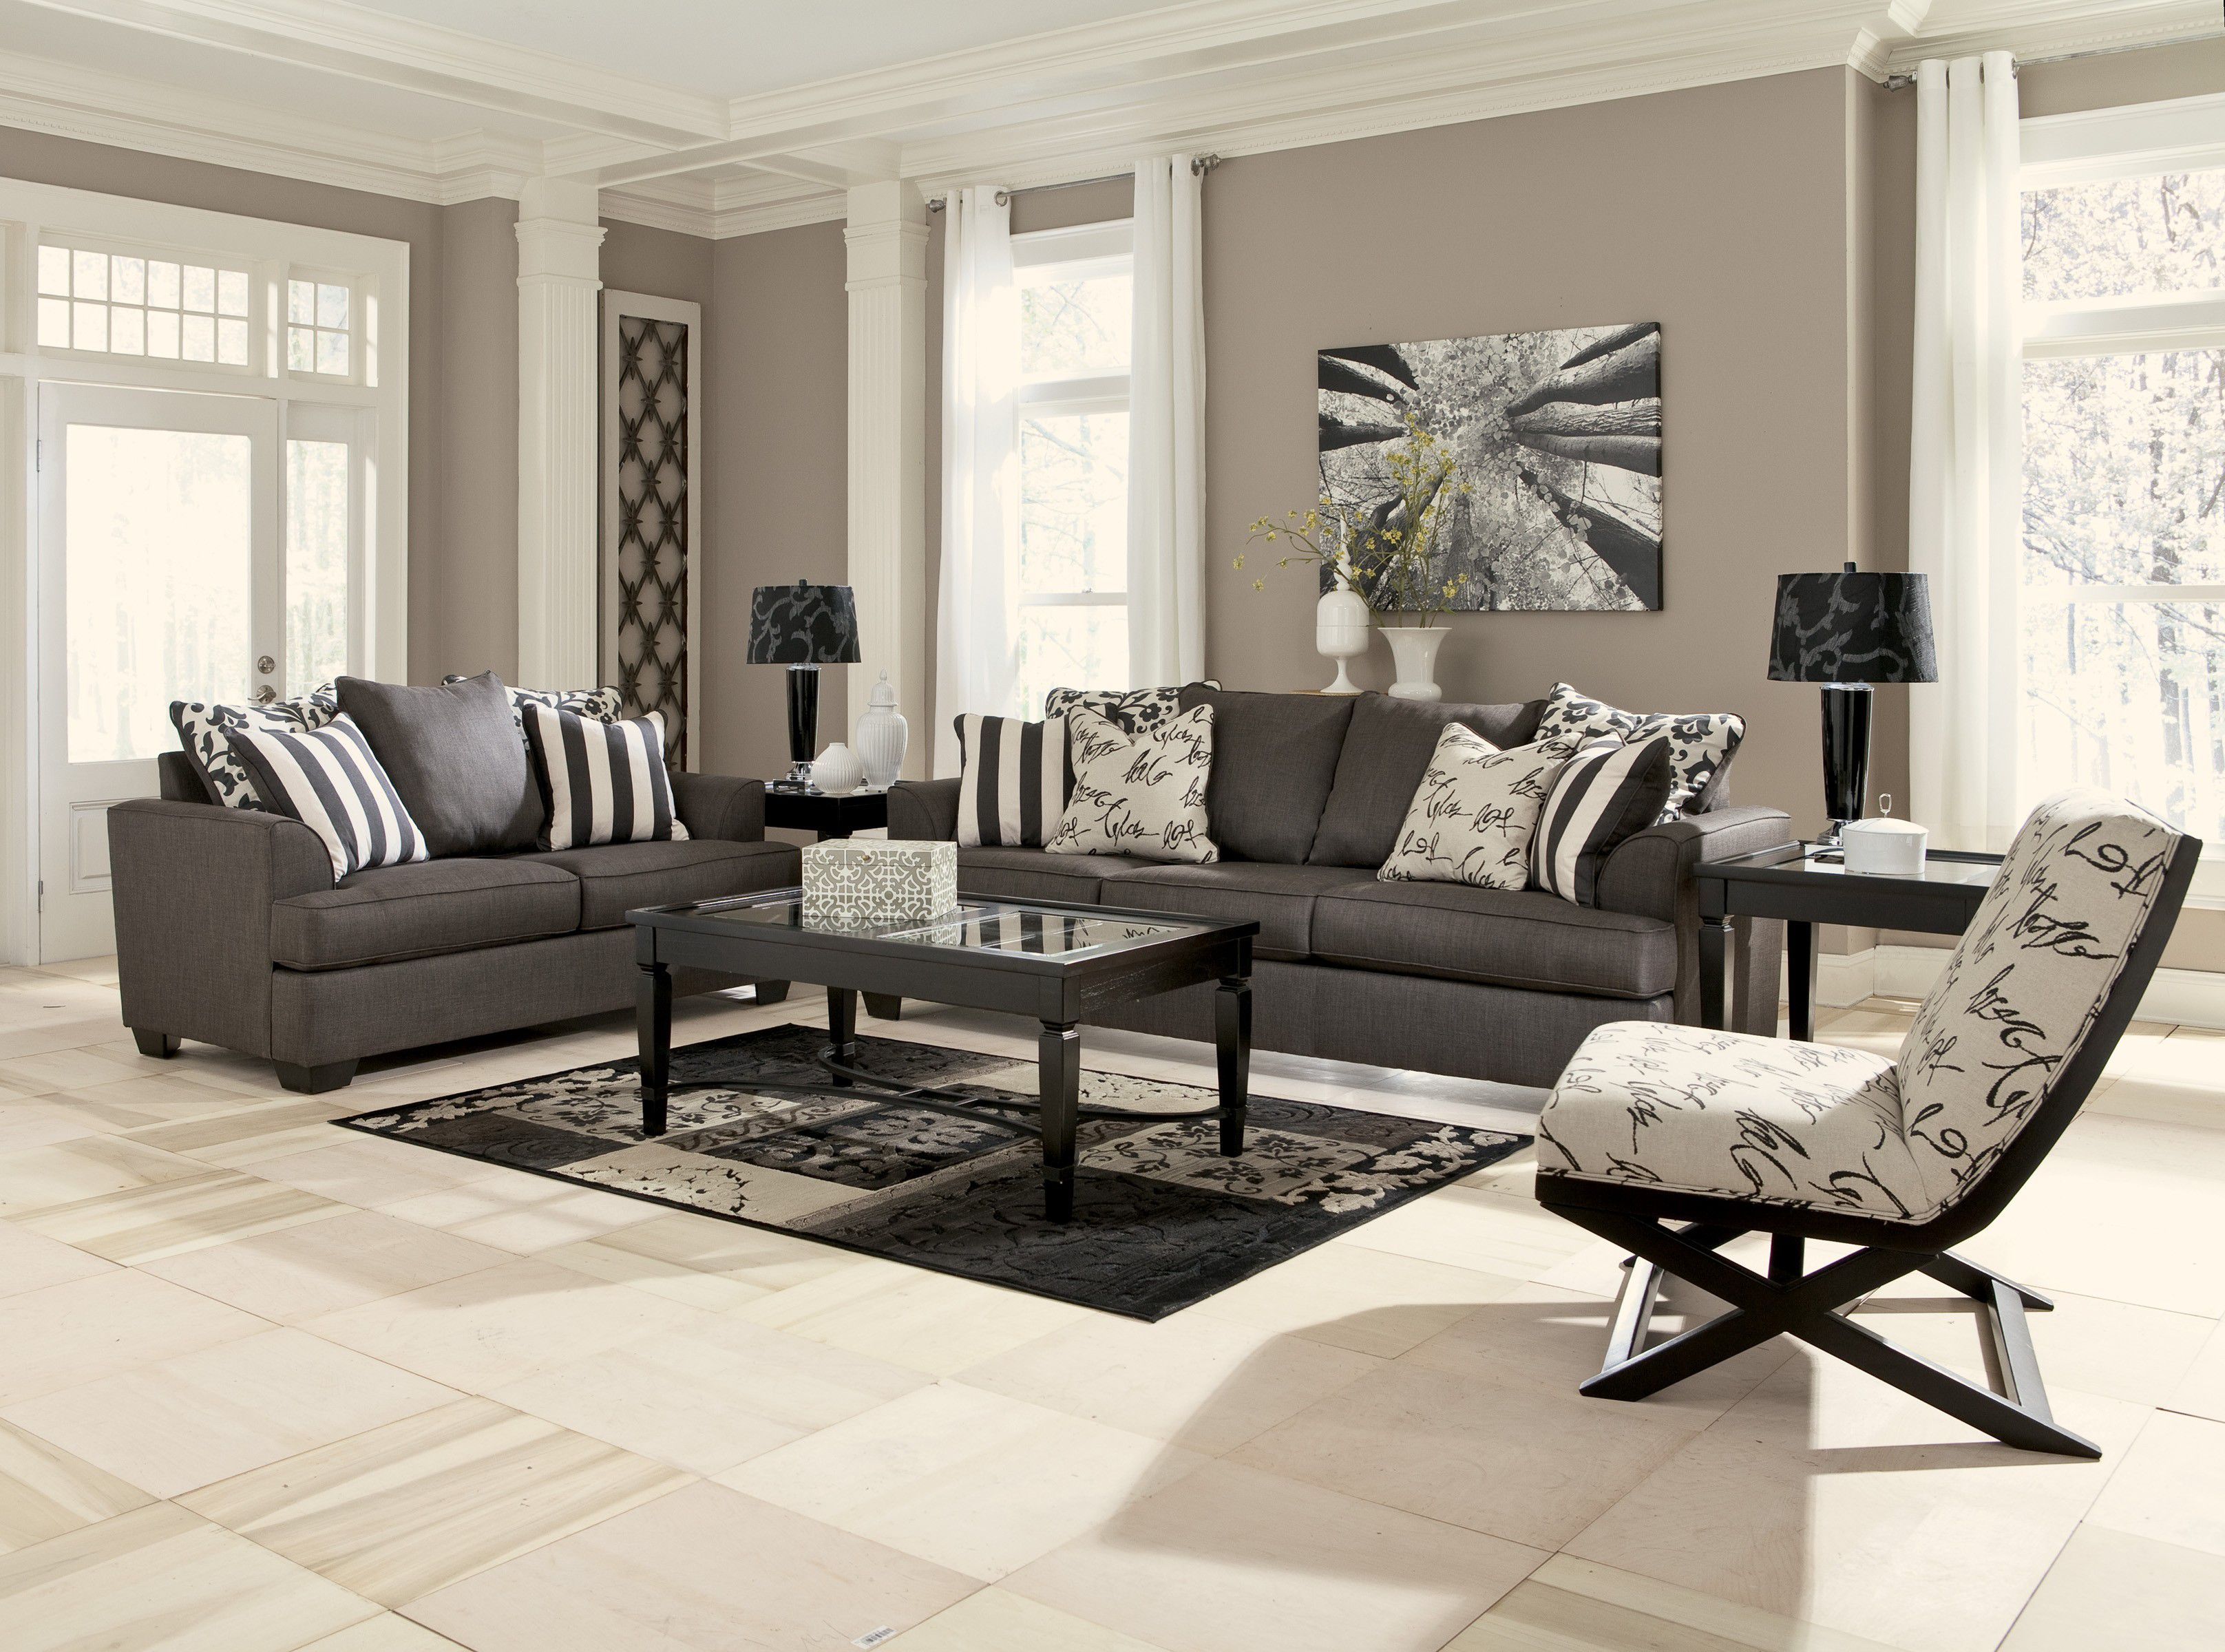 Brilliant Interior for Contemporary Living Room with Grey Sofas and Glass Top Coffee Table on Unique Carpet